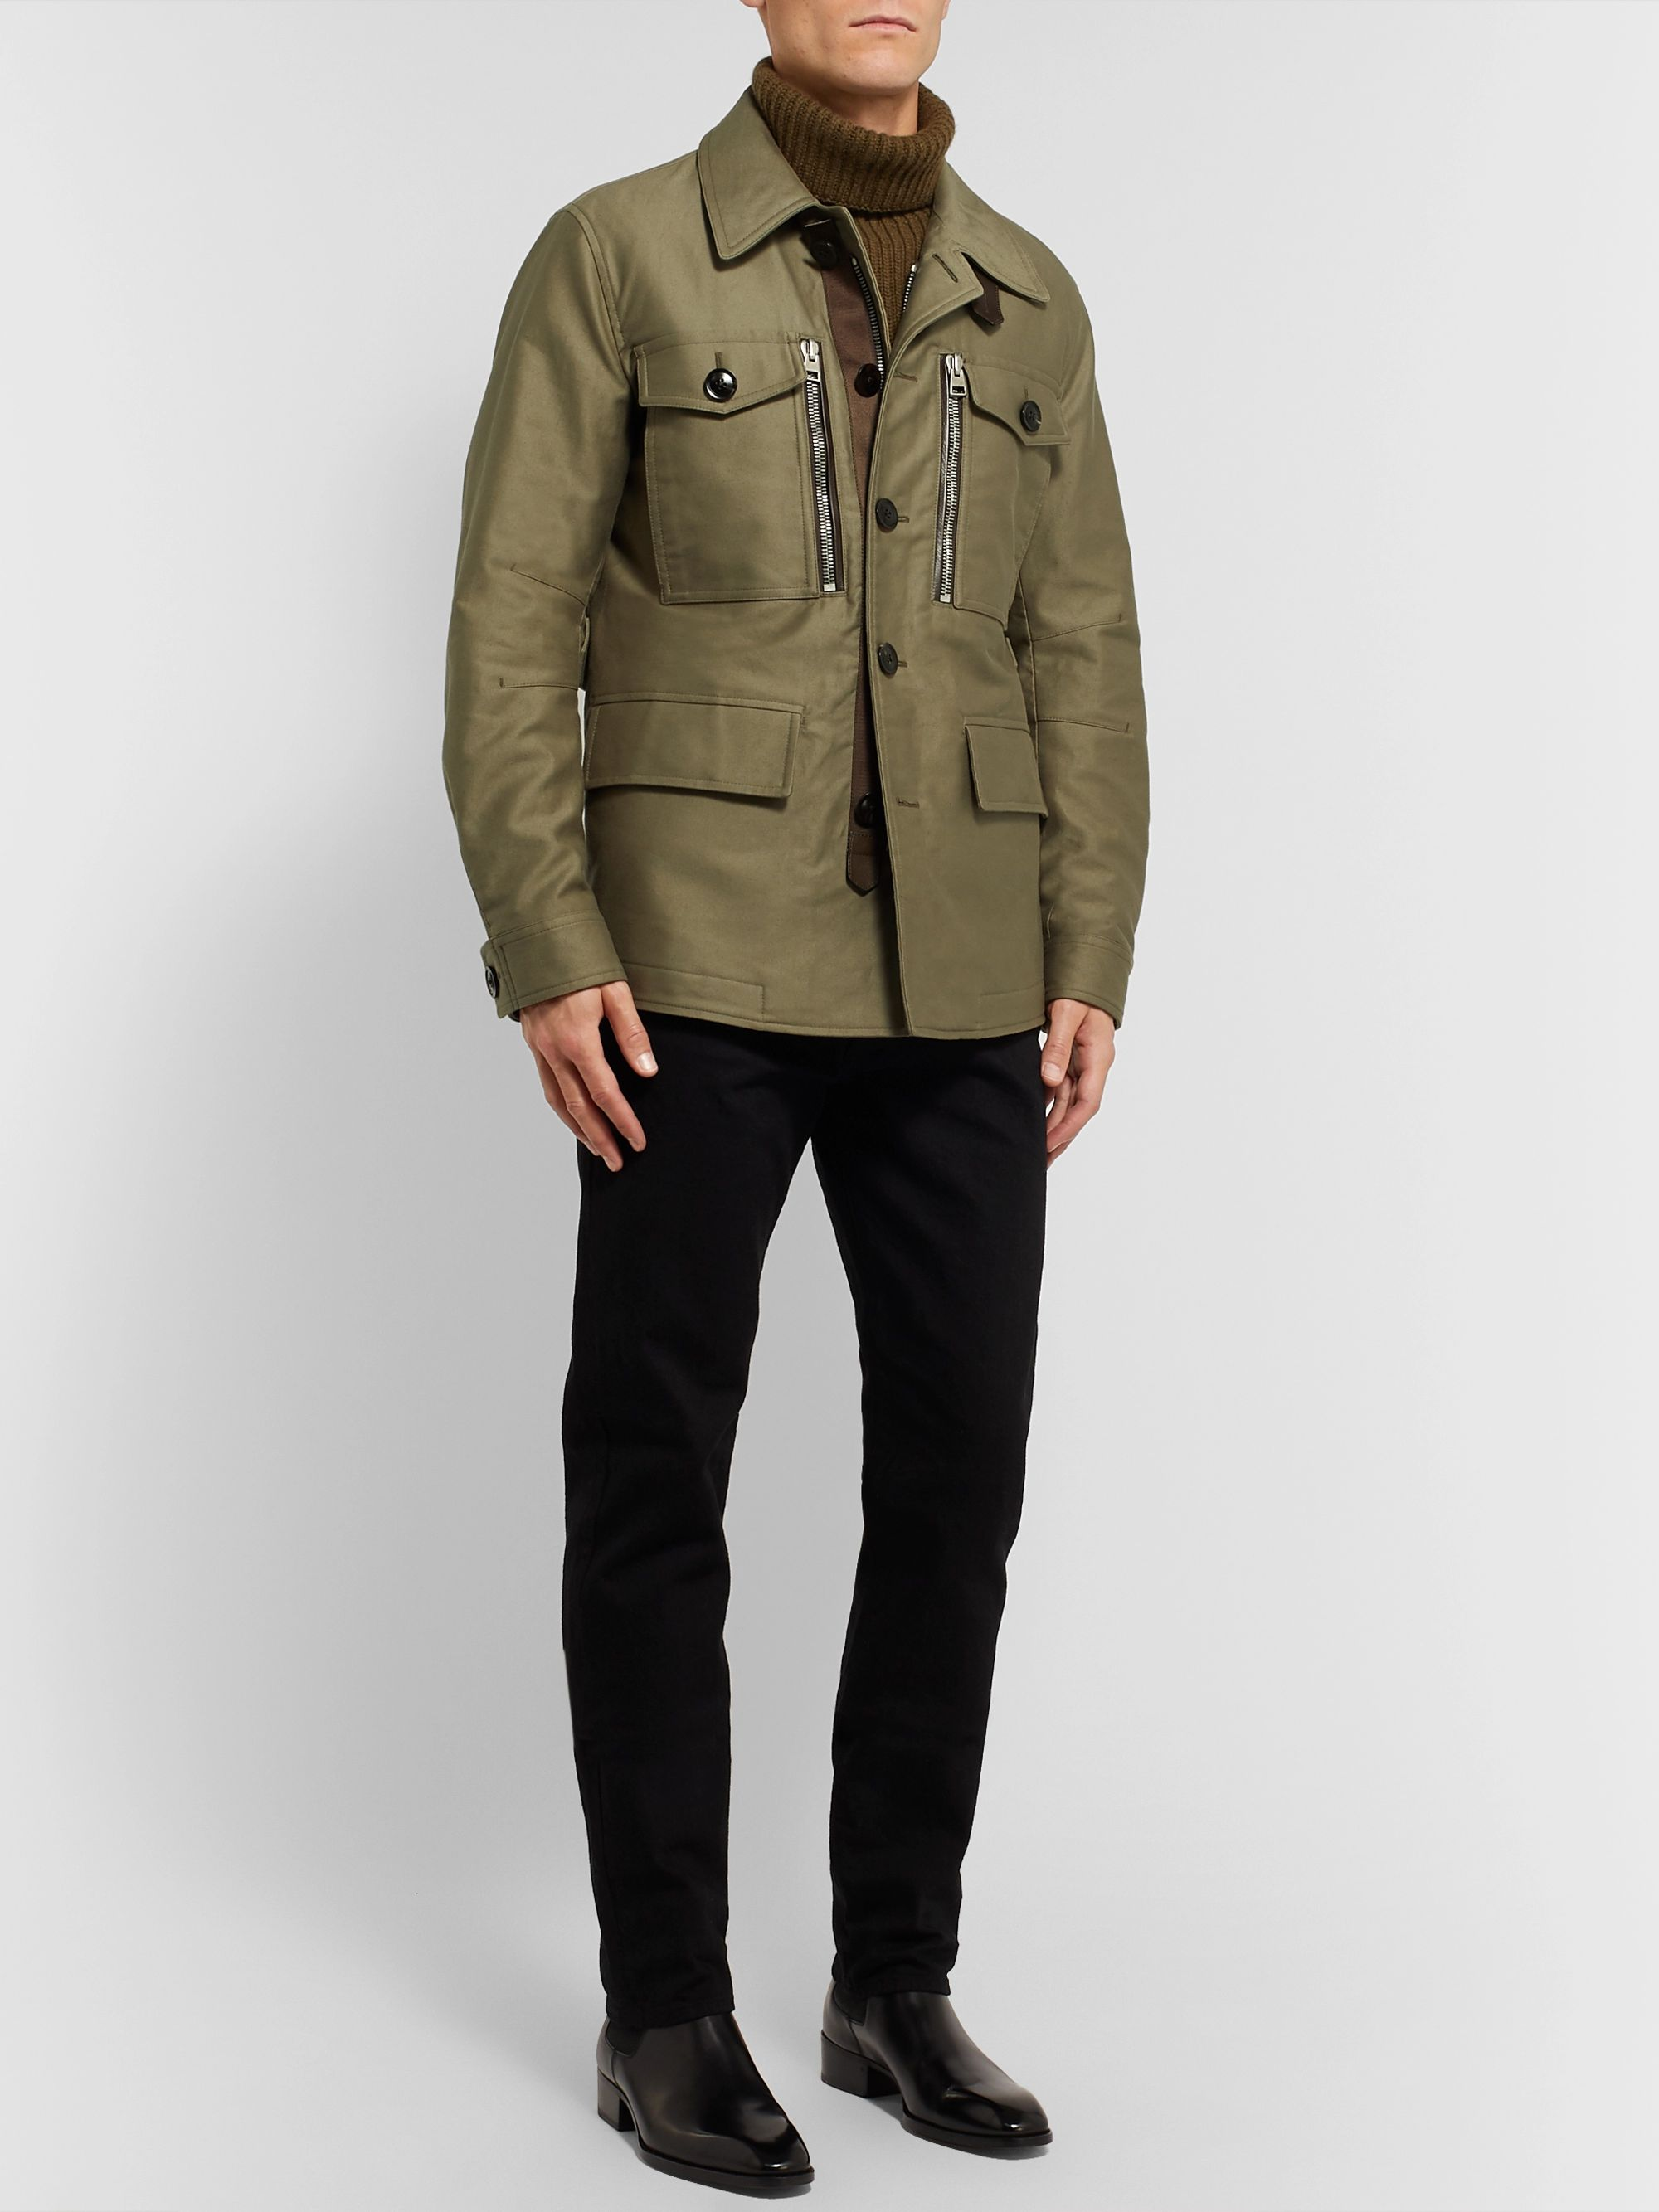 TOM FORD Cotton-Twill Field Jacket